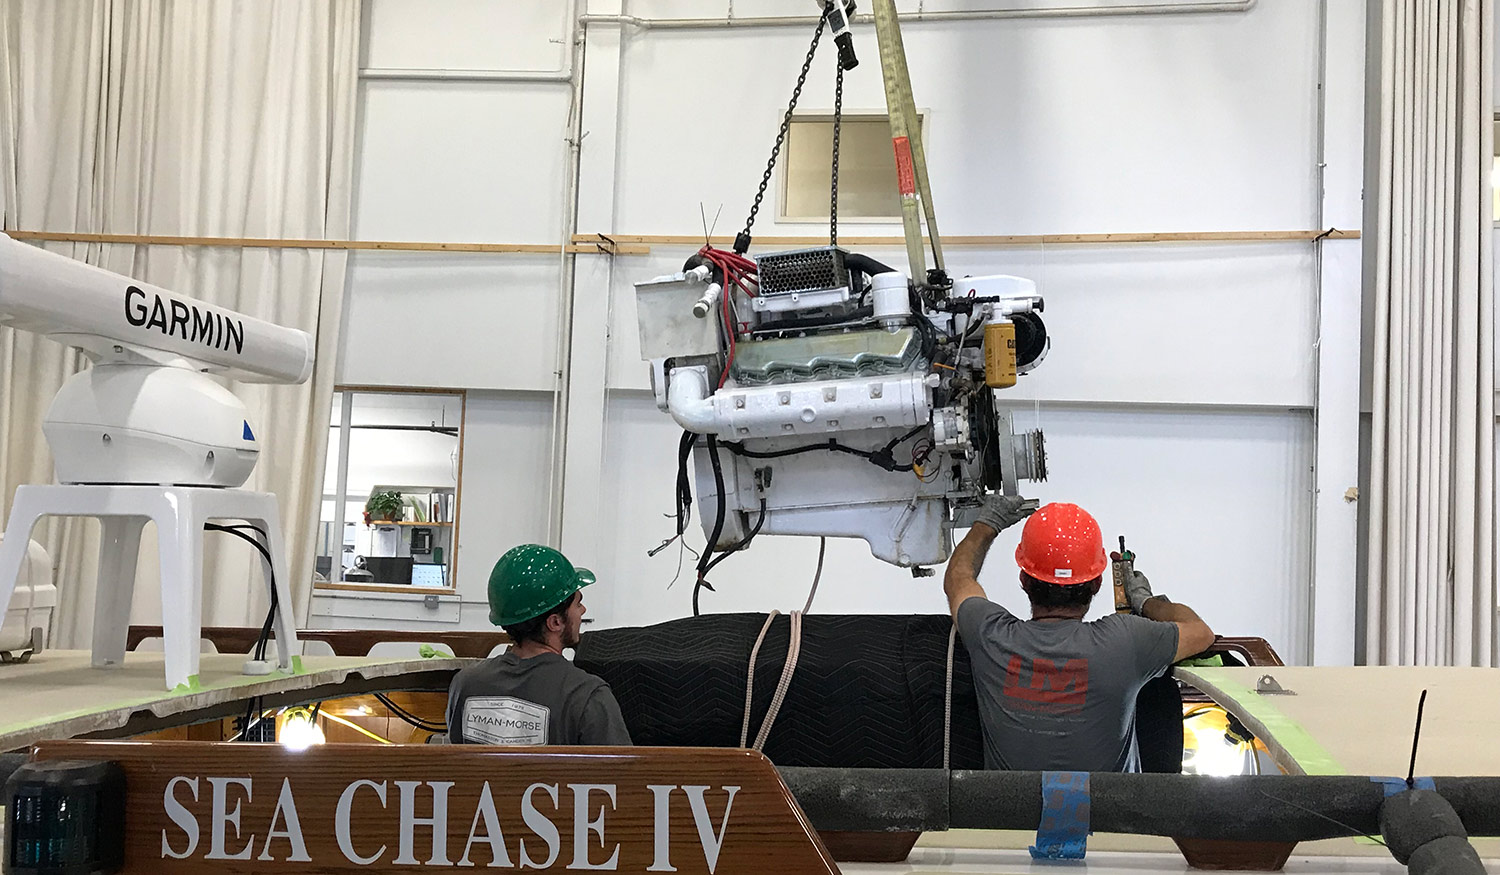 New engine installation in Sea Chase IV at Lyman-Morse